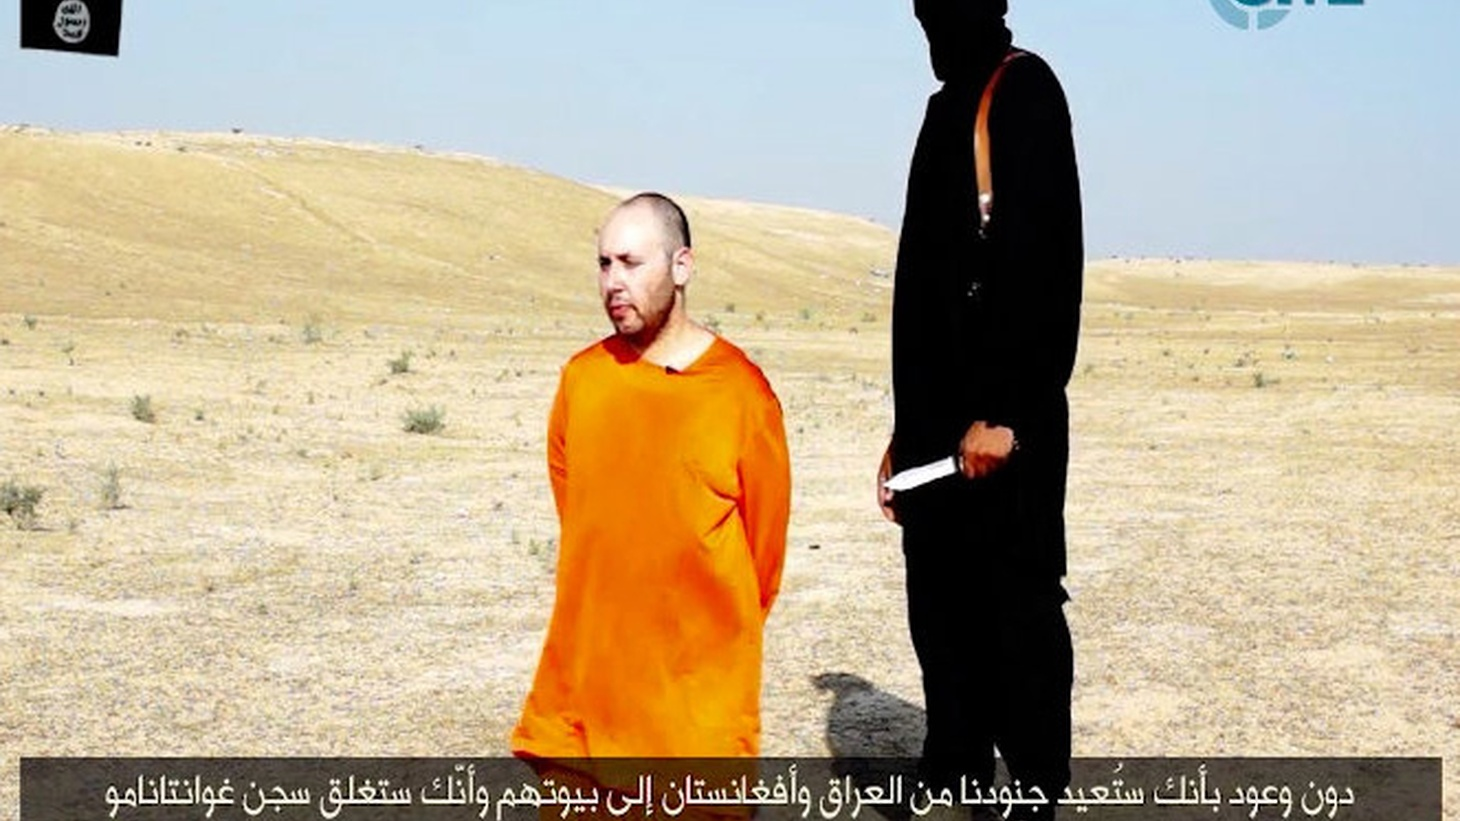 Today on Press Play, we discuss the video that ISIS just released this morning that appears to show the execution of another American journalist. Steven Sotloff was captured in Syria last year while covering the conflict there.